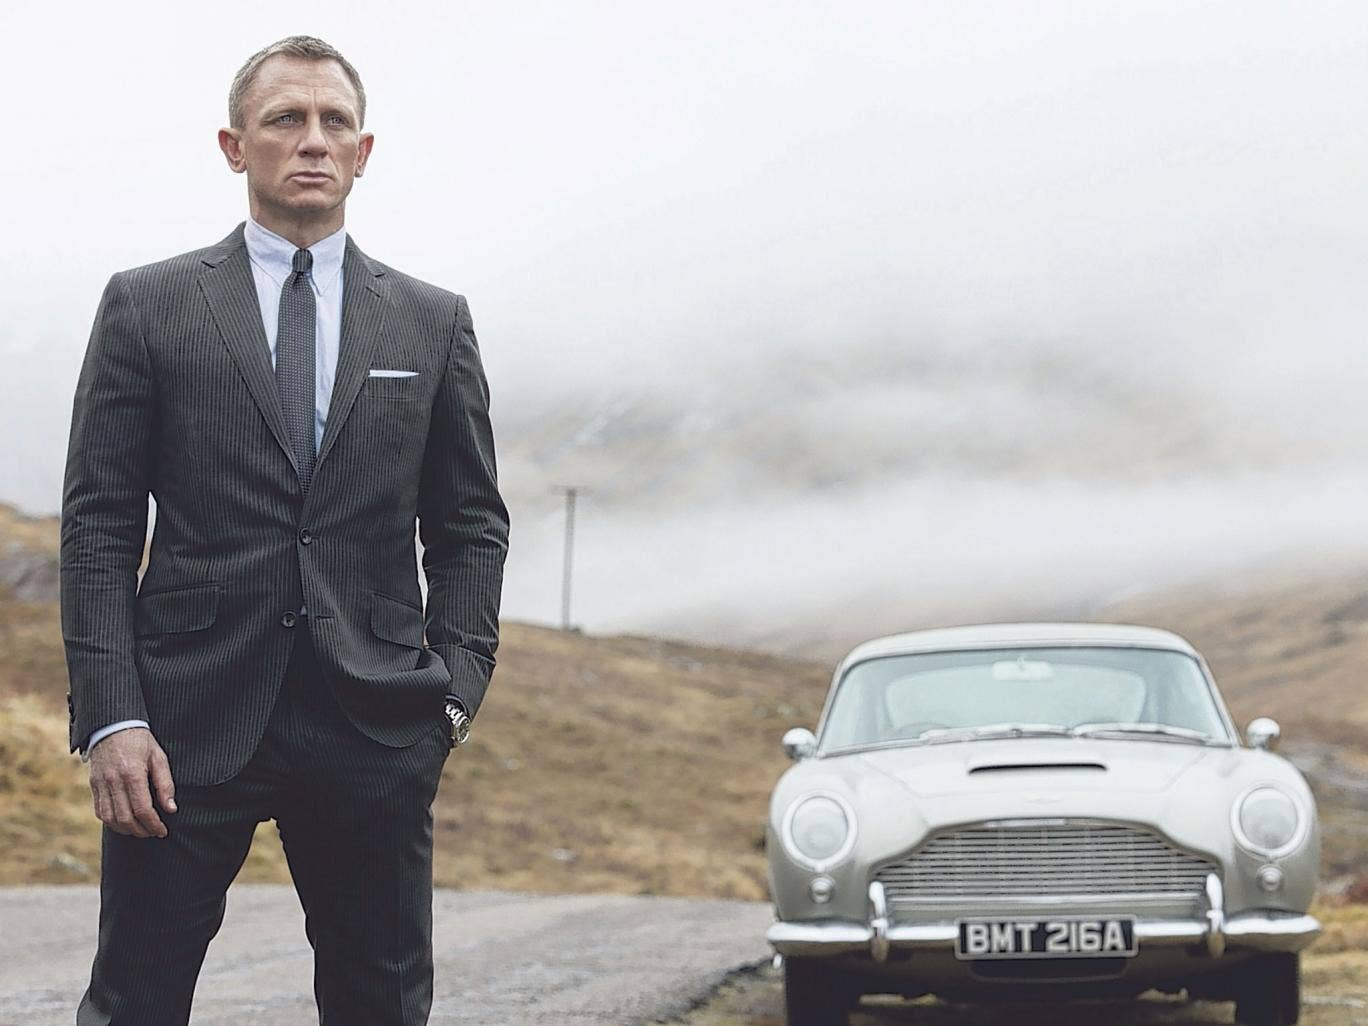 Skyfall was released in October 2012 in celebration of the 50th anniversary of the Bond franchise, but which 007 outing was released for its 40th anniversary in 2002?